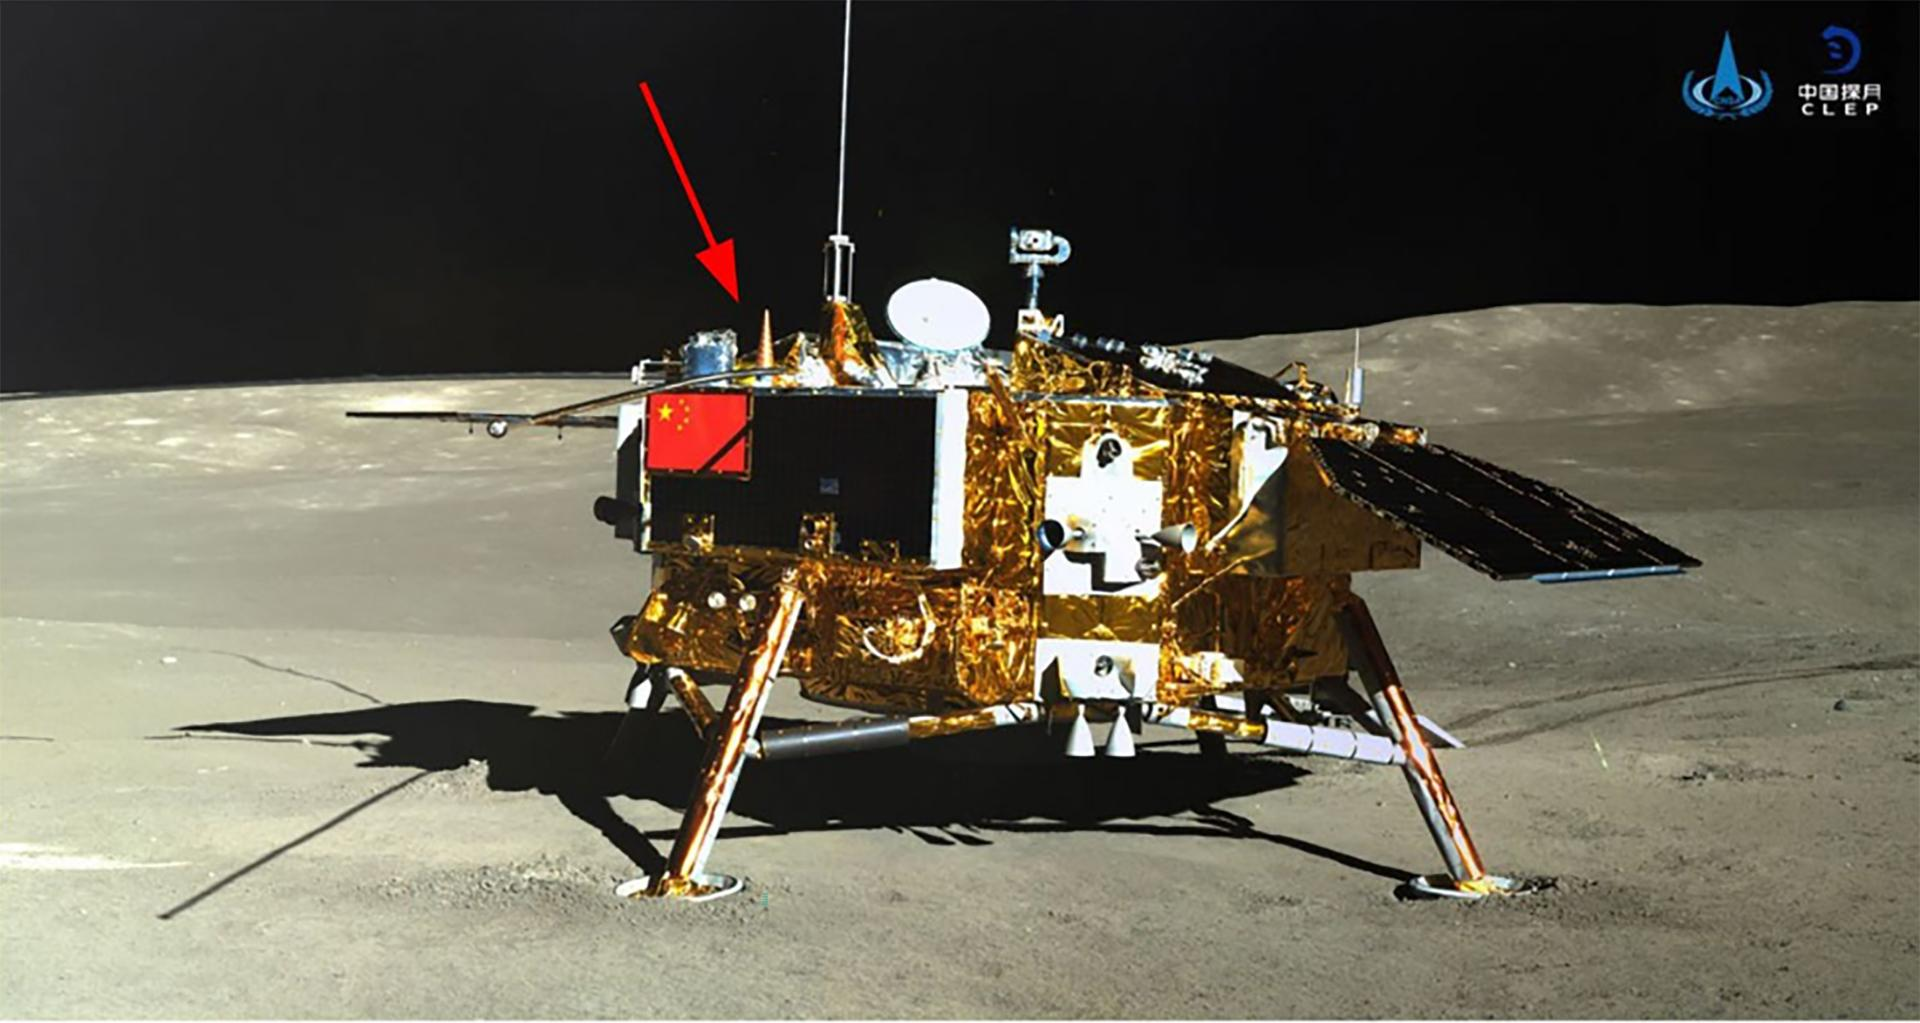 Chang'e-4 lunar lander imaged by the Yutu-2 rover